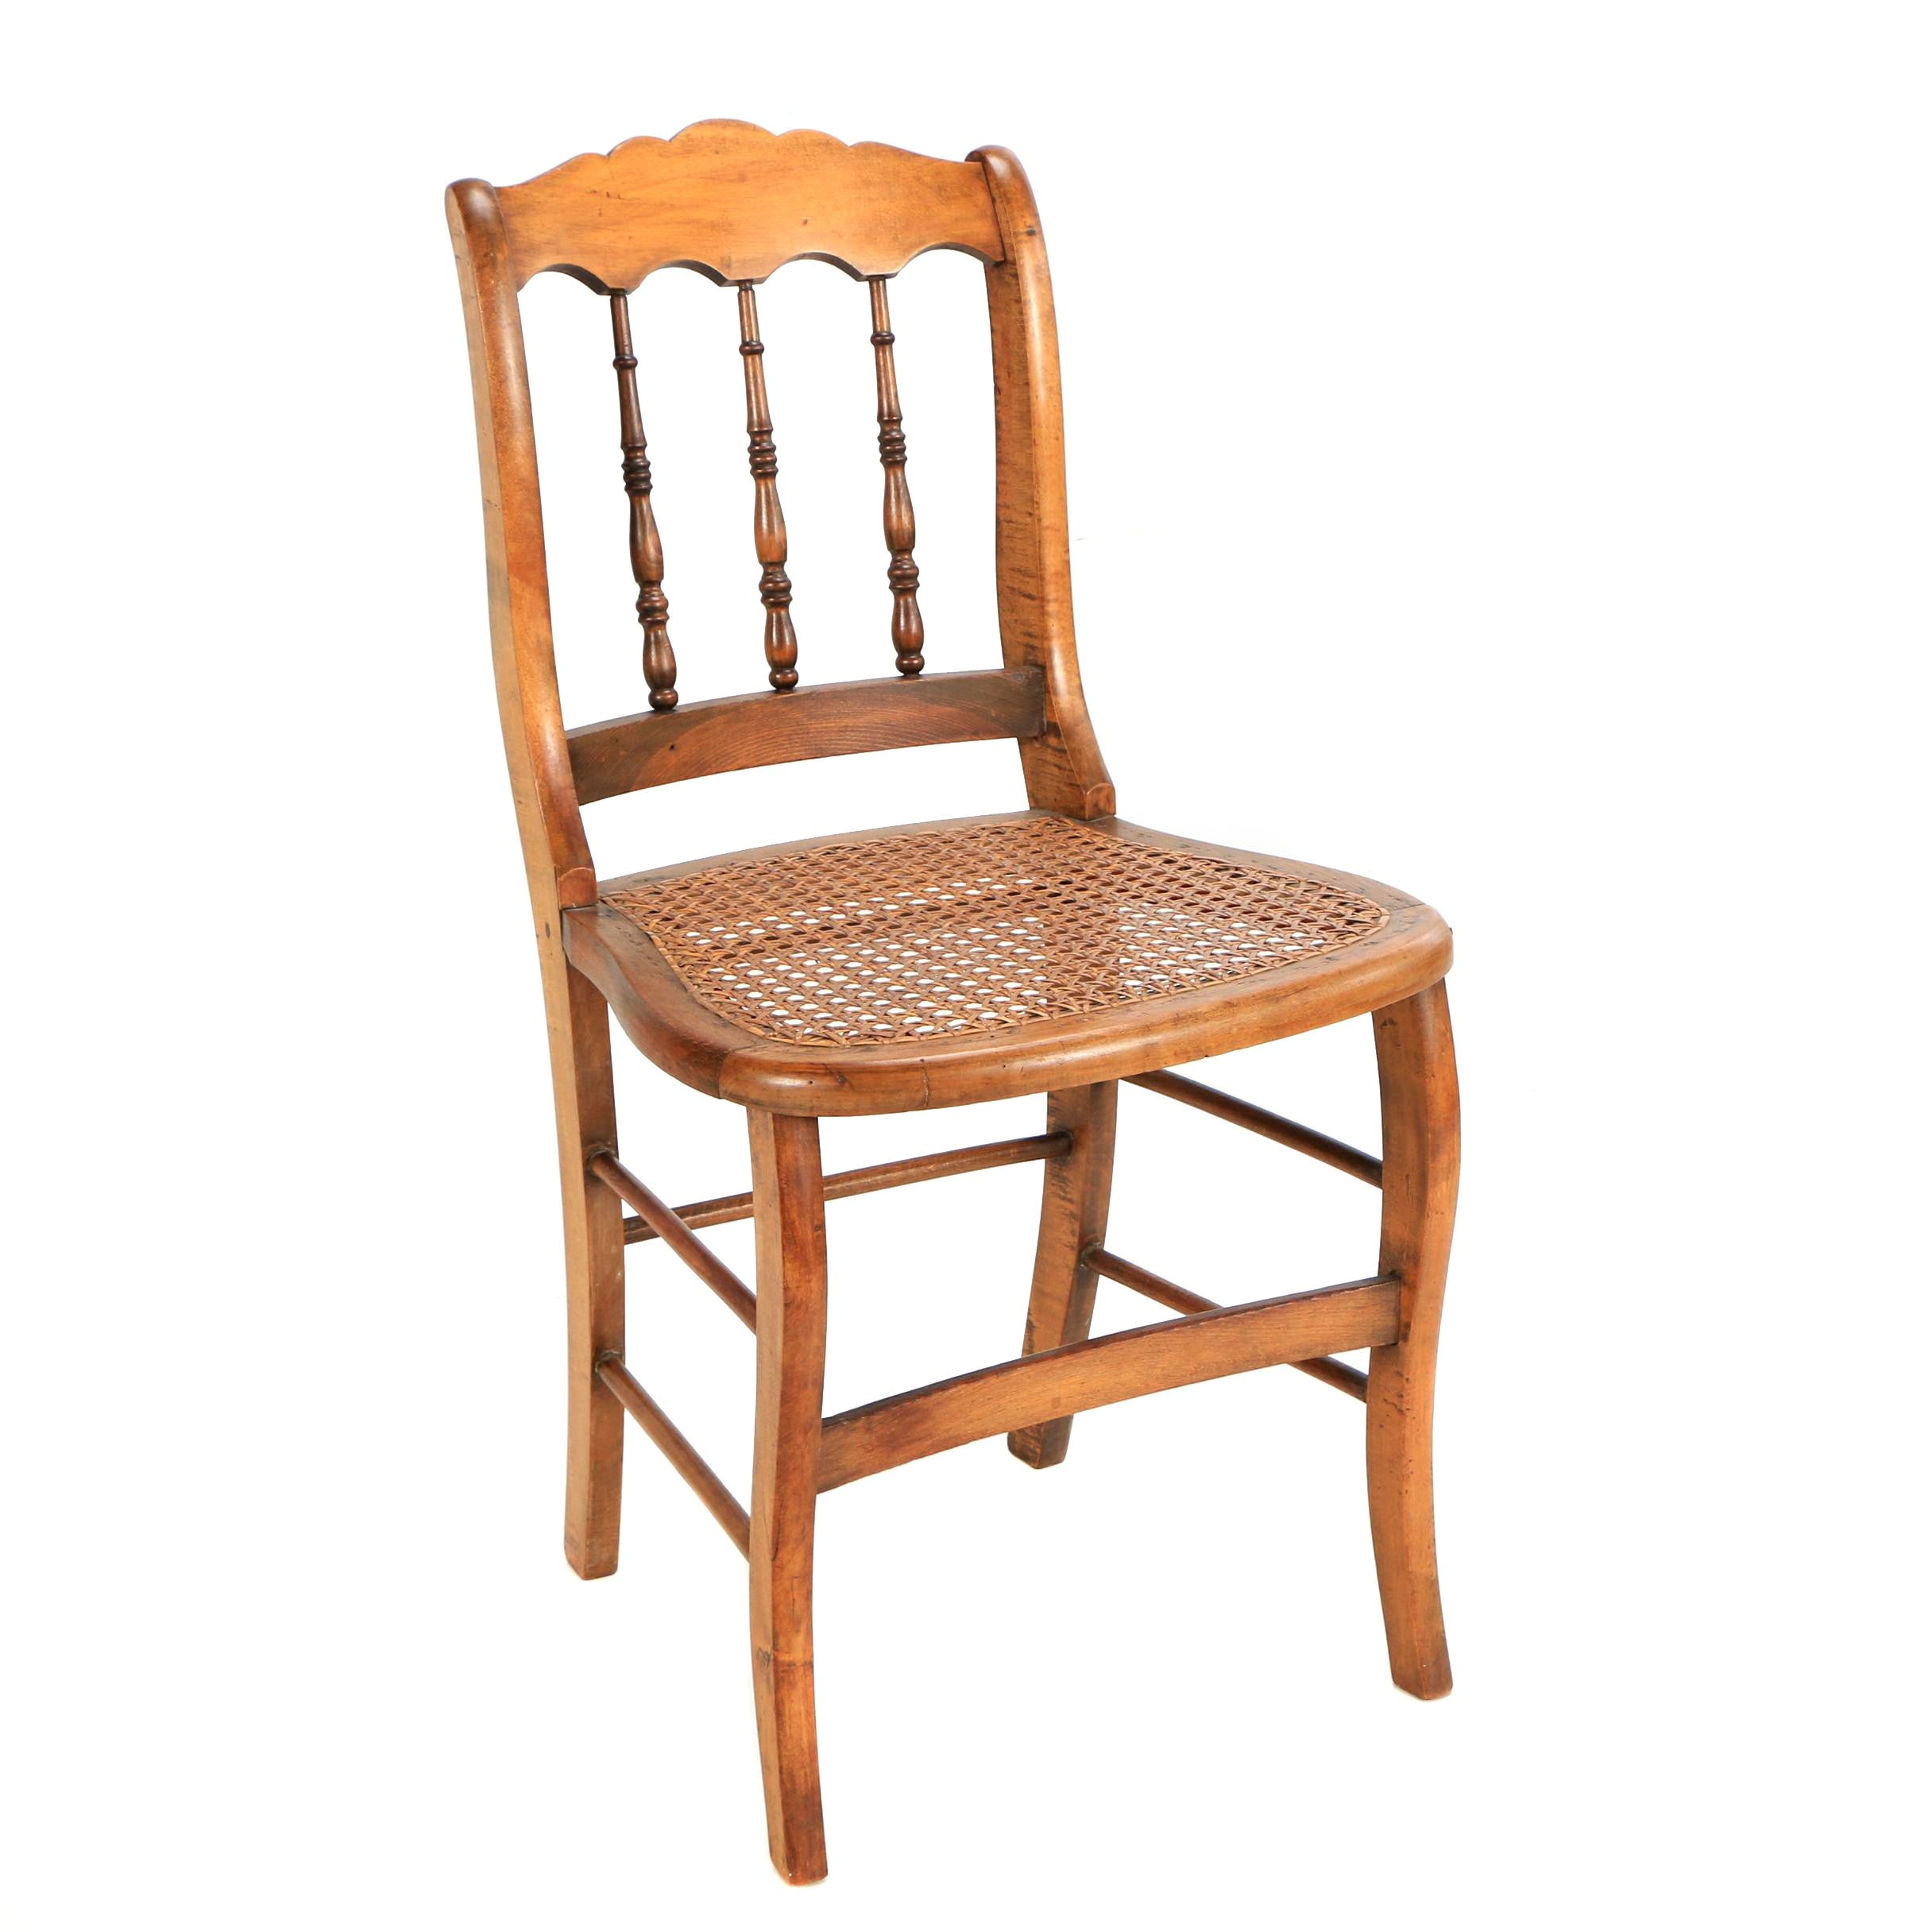 Late 19th Century Woven Cane Side Chair